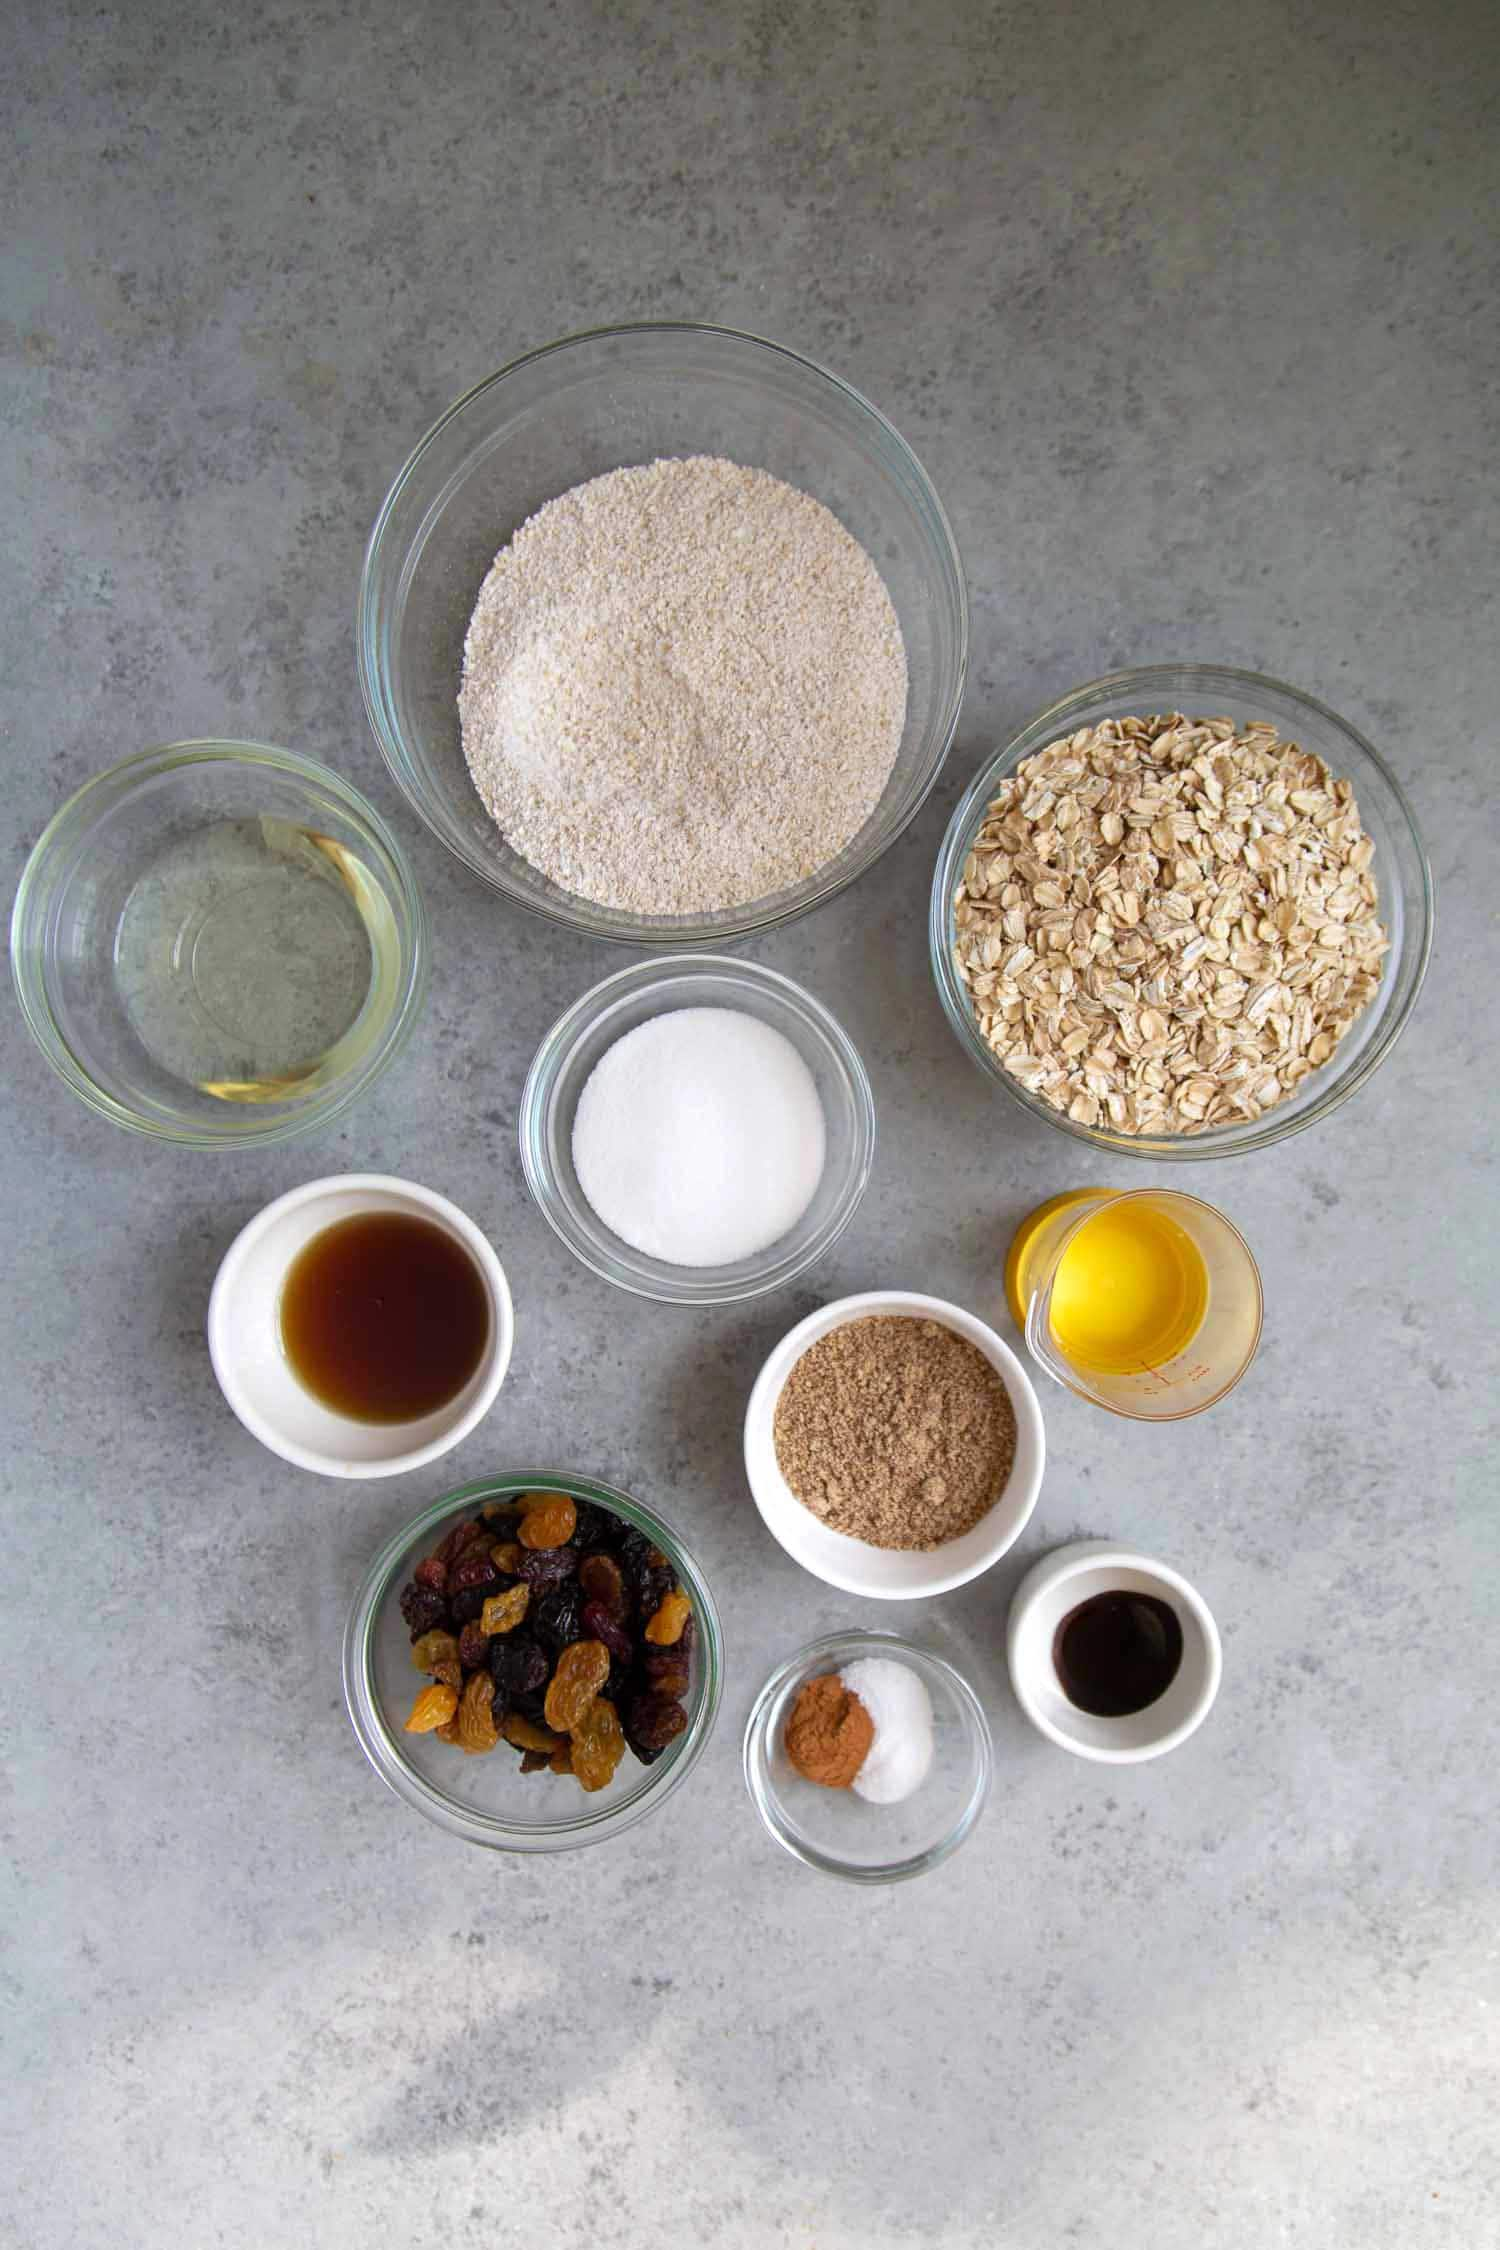 Gluten free vegan oatmeal raisin cookie ingredients